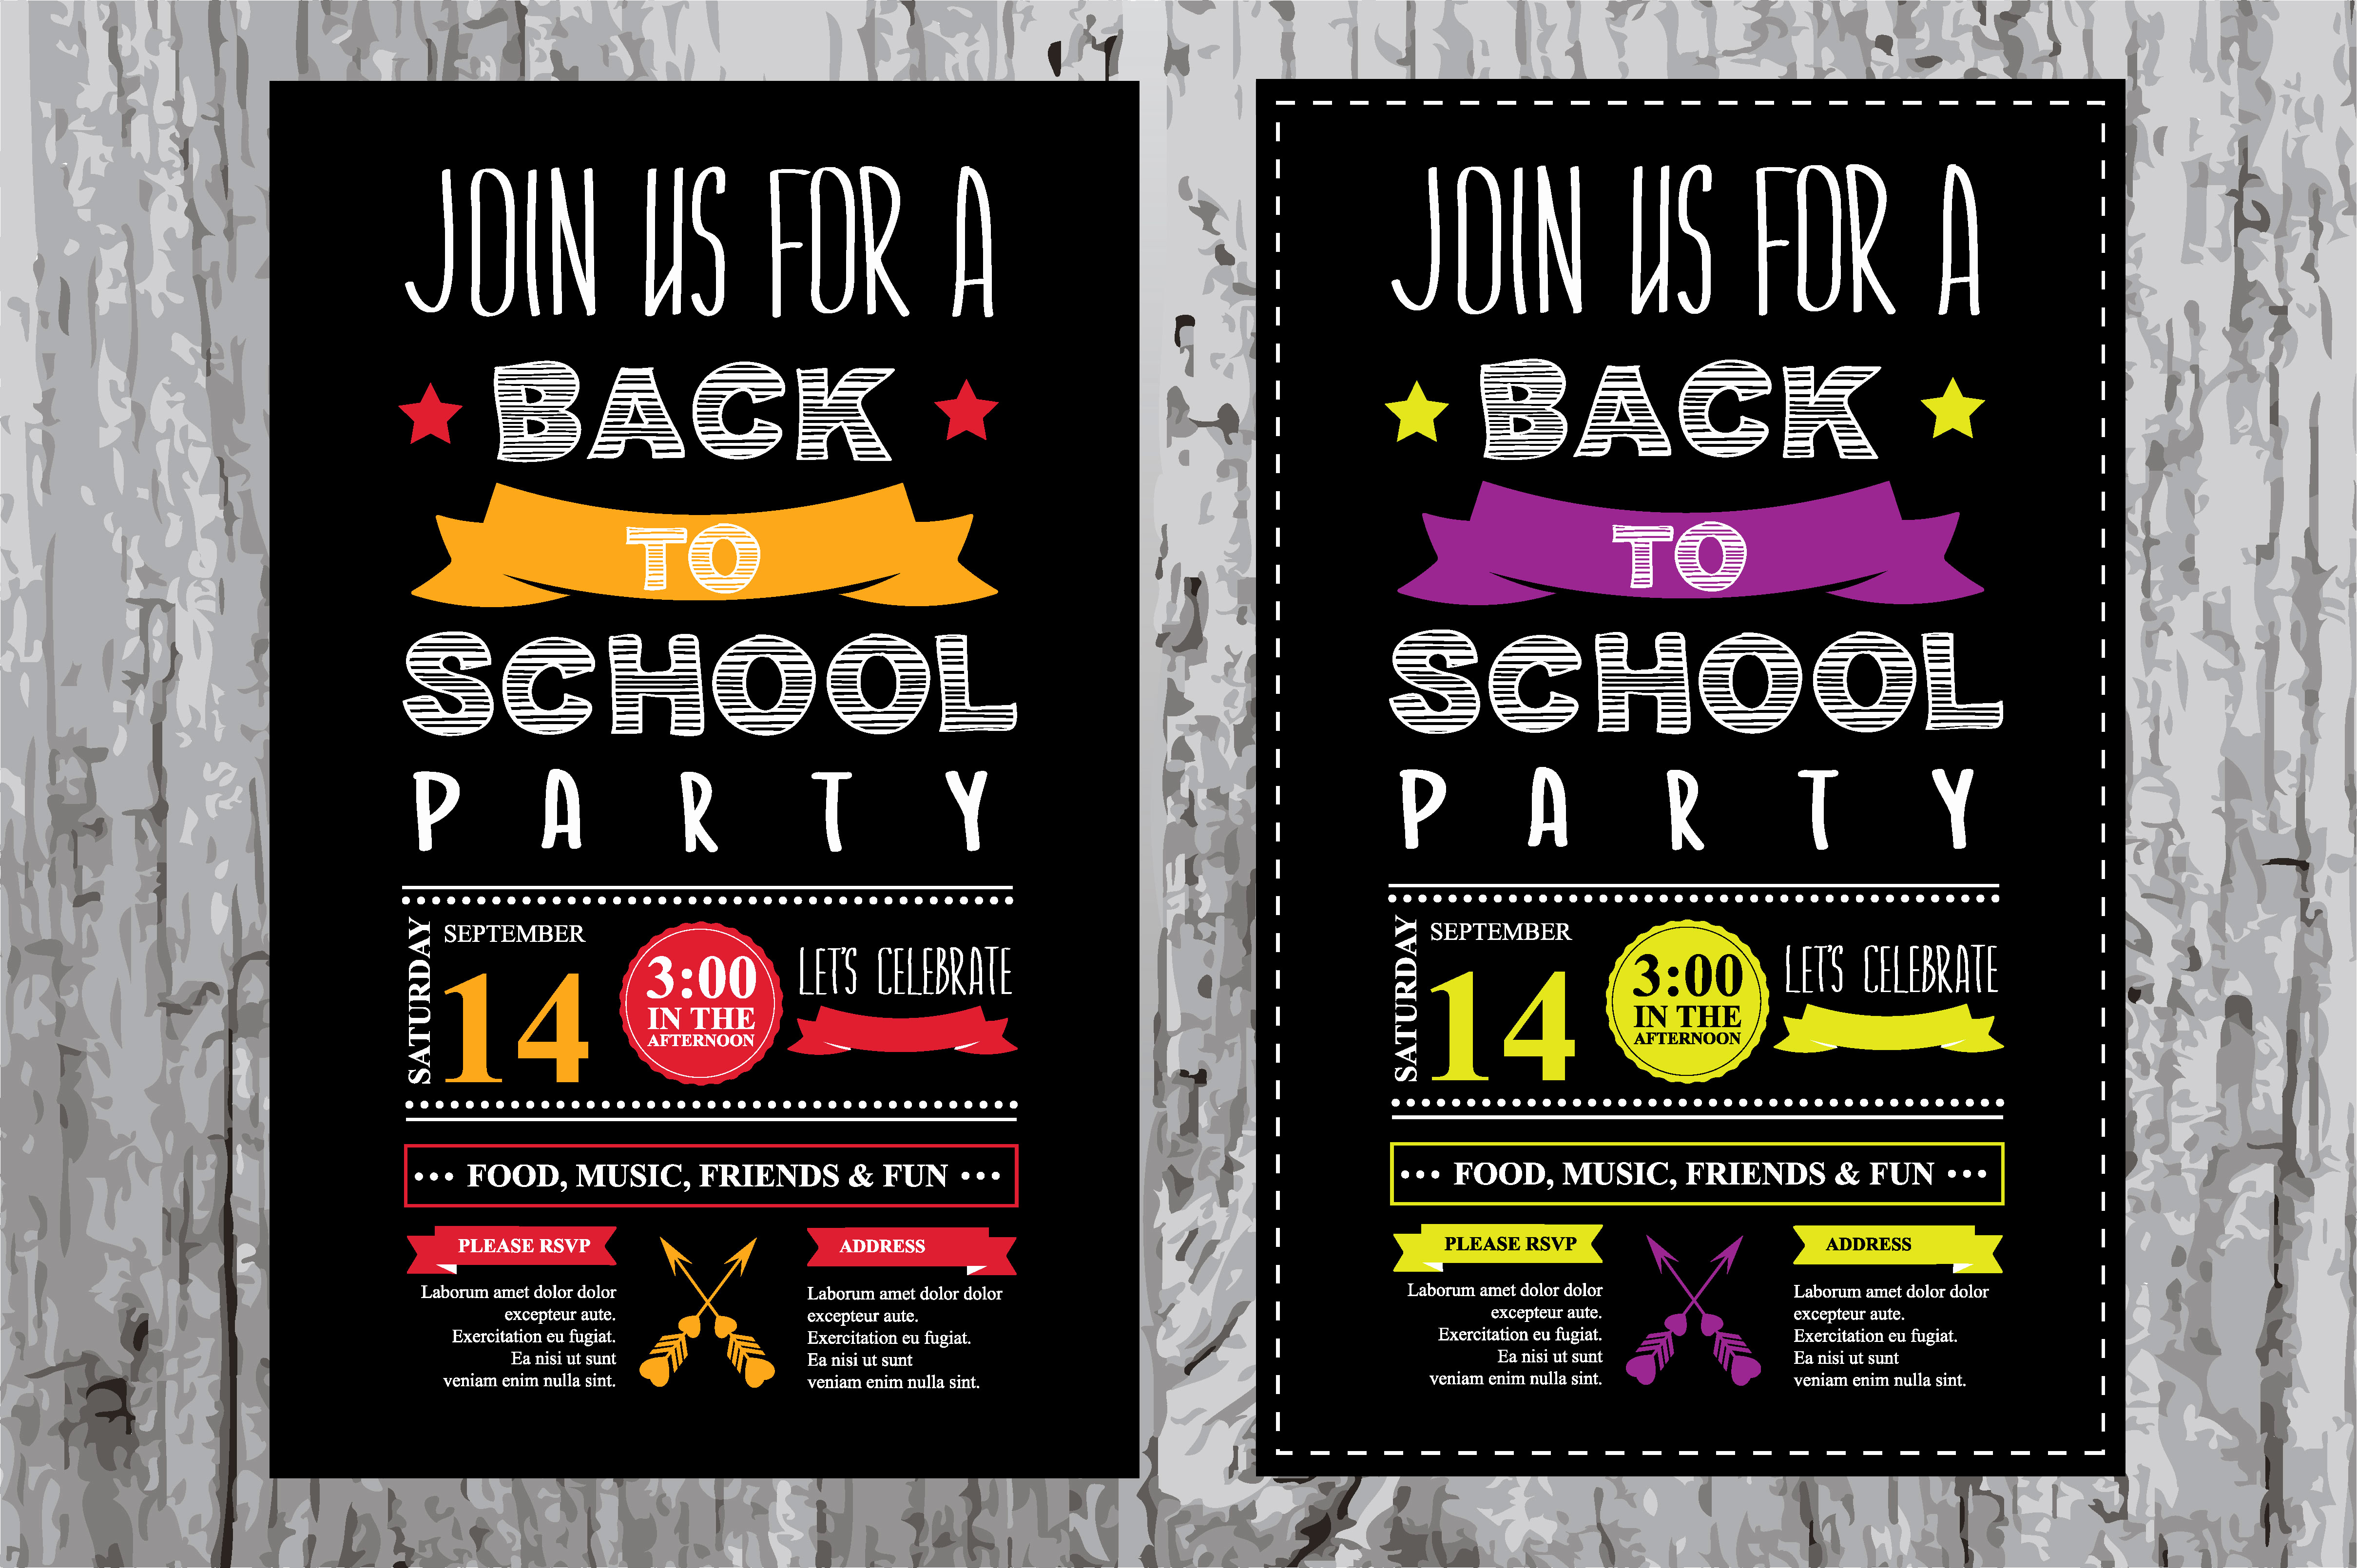 Back to School Party Invitation Unique Back to School Party Invitation Invitation Templates On